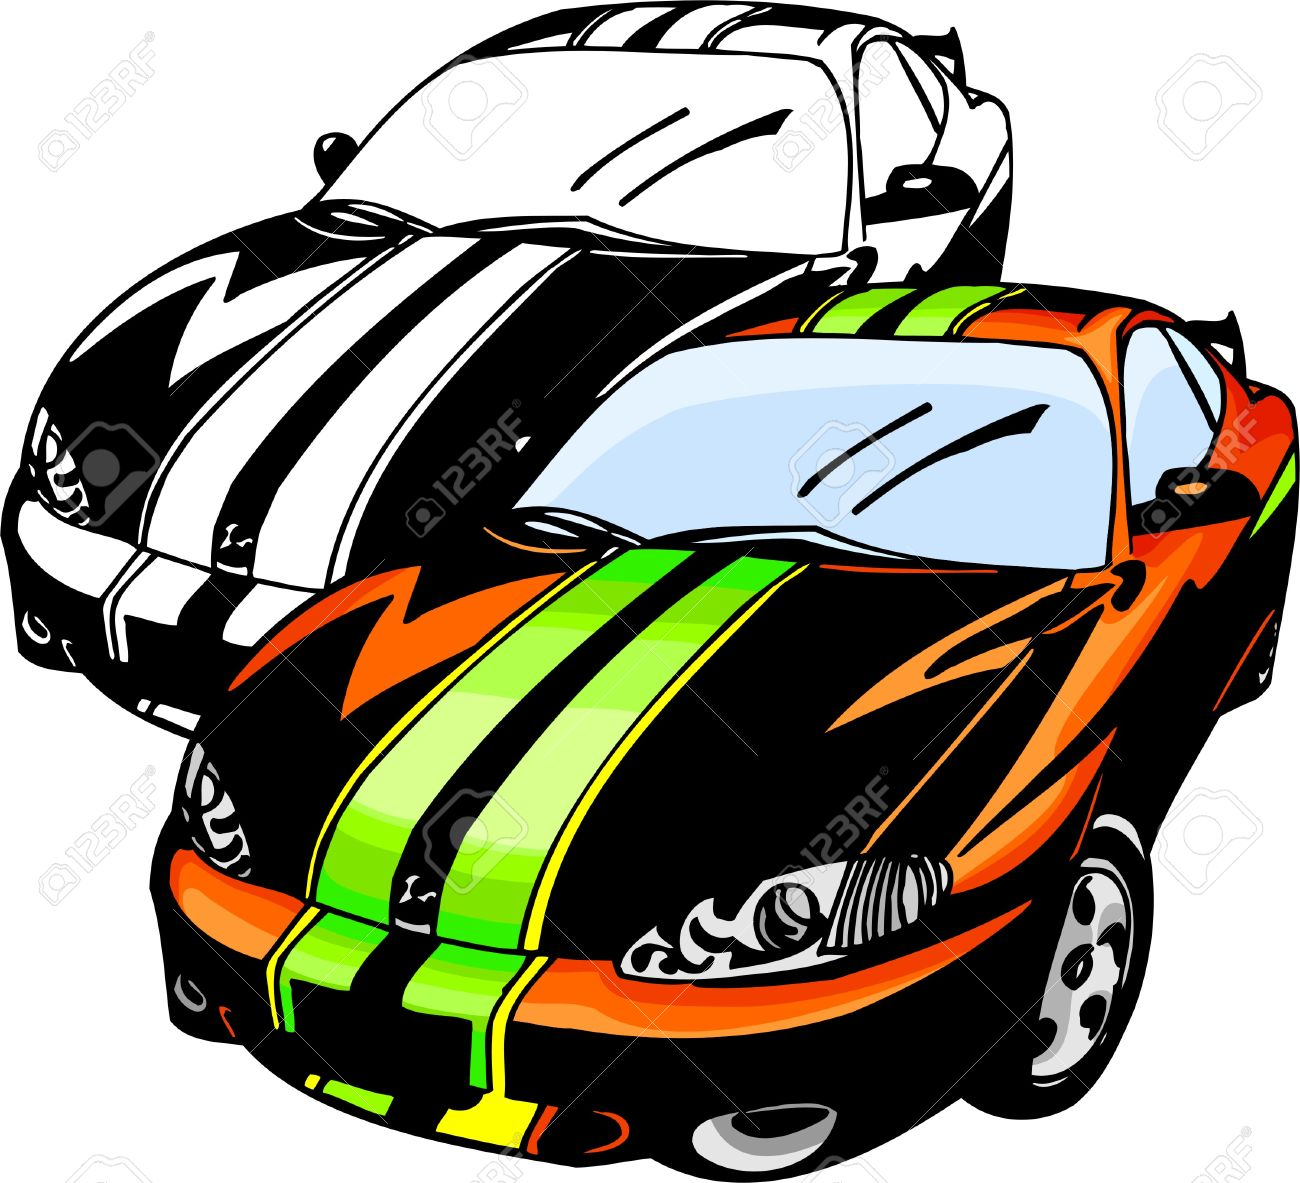 Sport Cars Illustration Vinyl Ready Royalty Free Cliparts Vectors And Stock Illustration Image 8682772